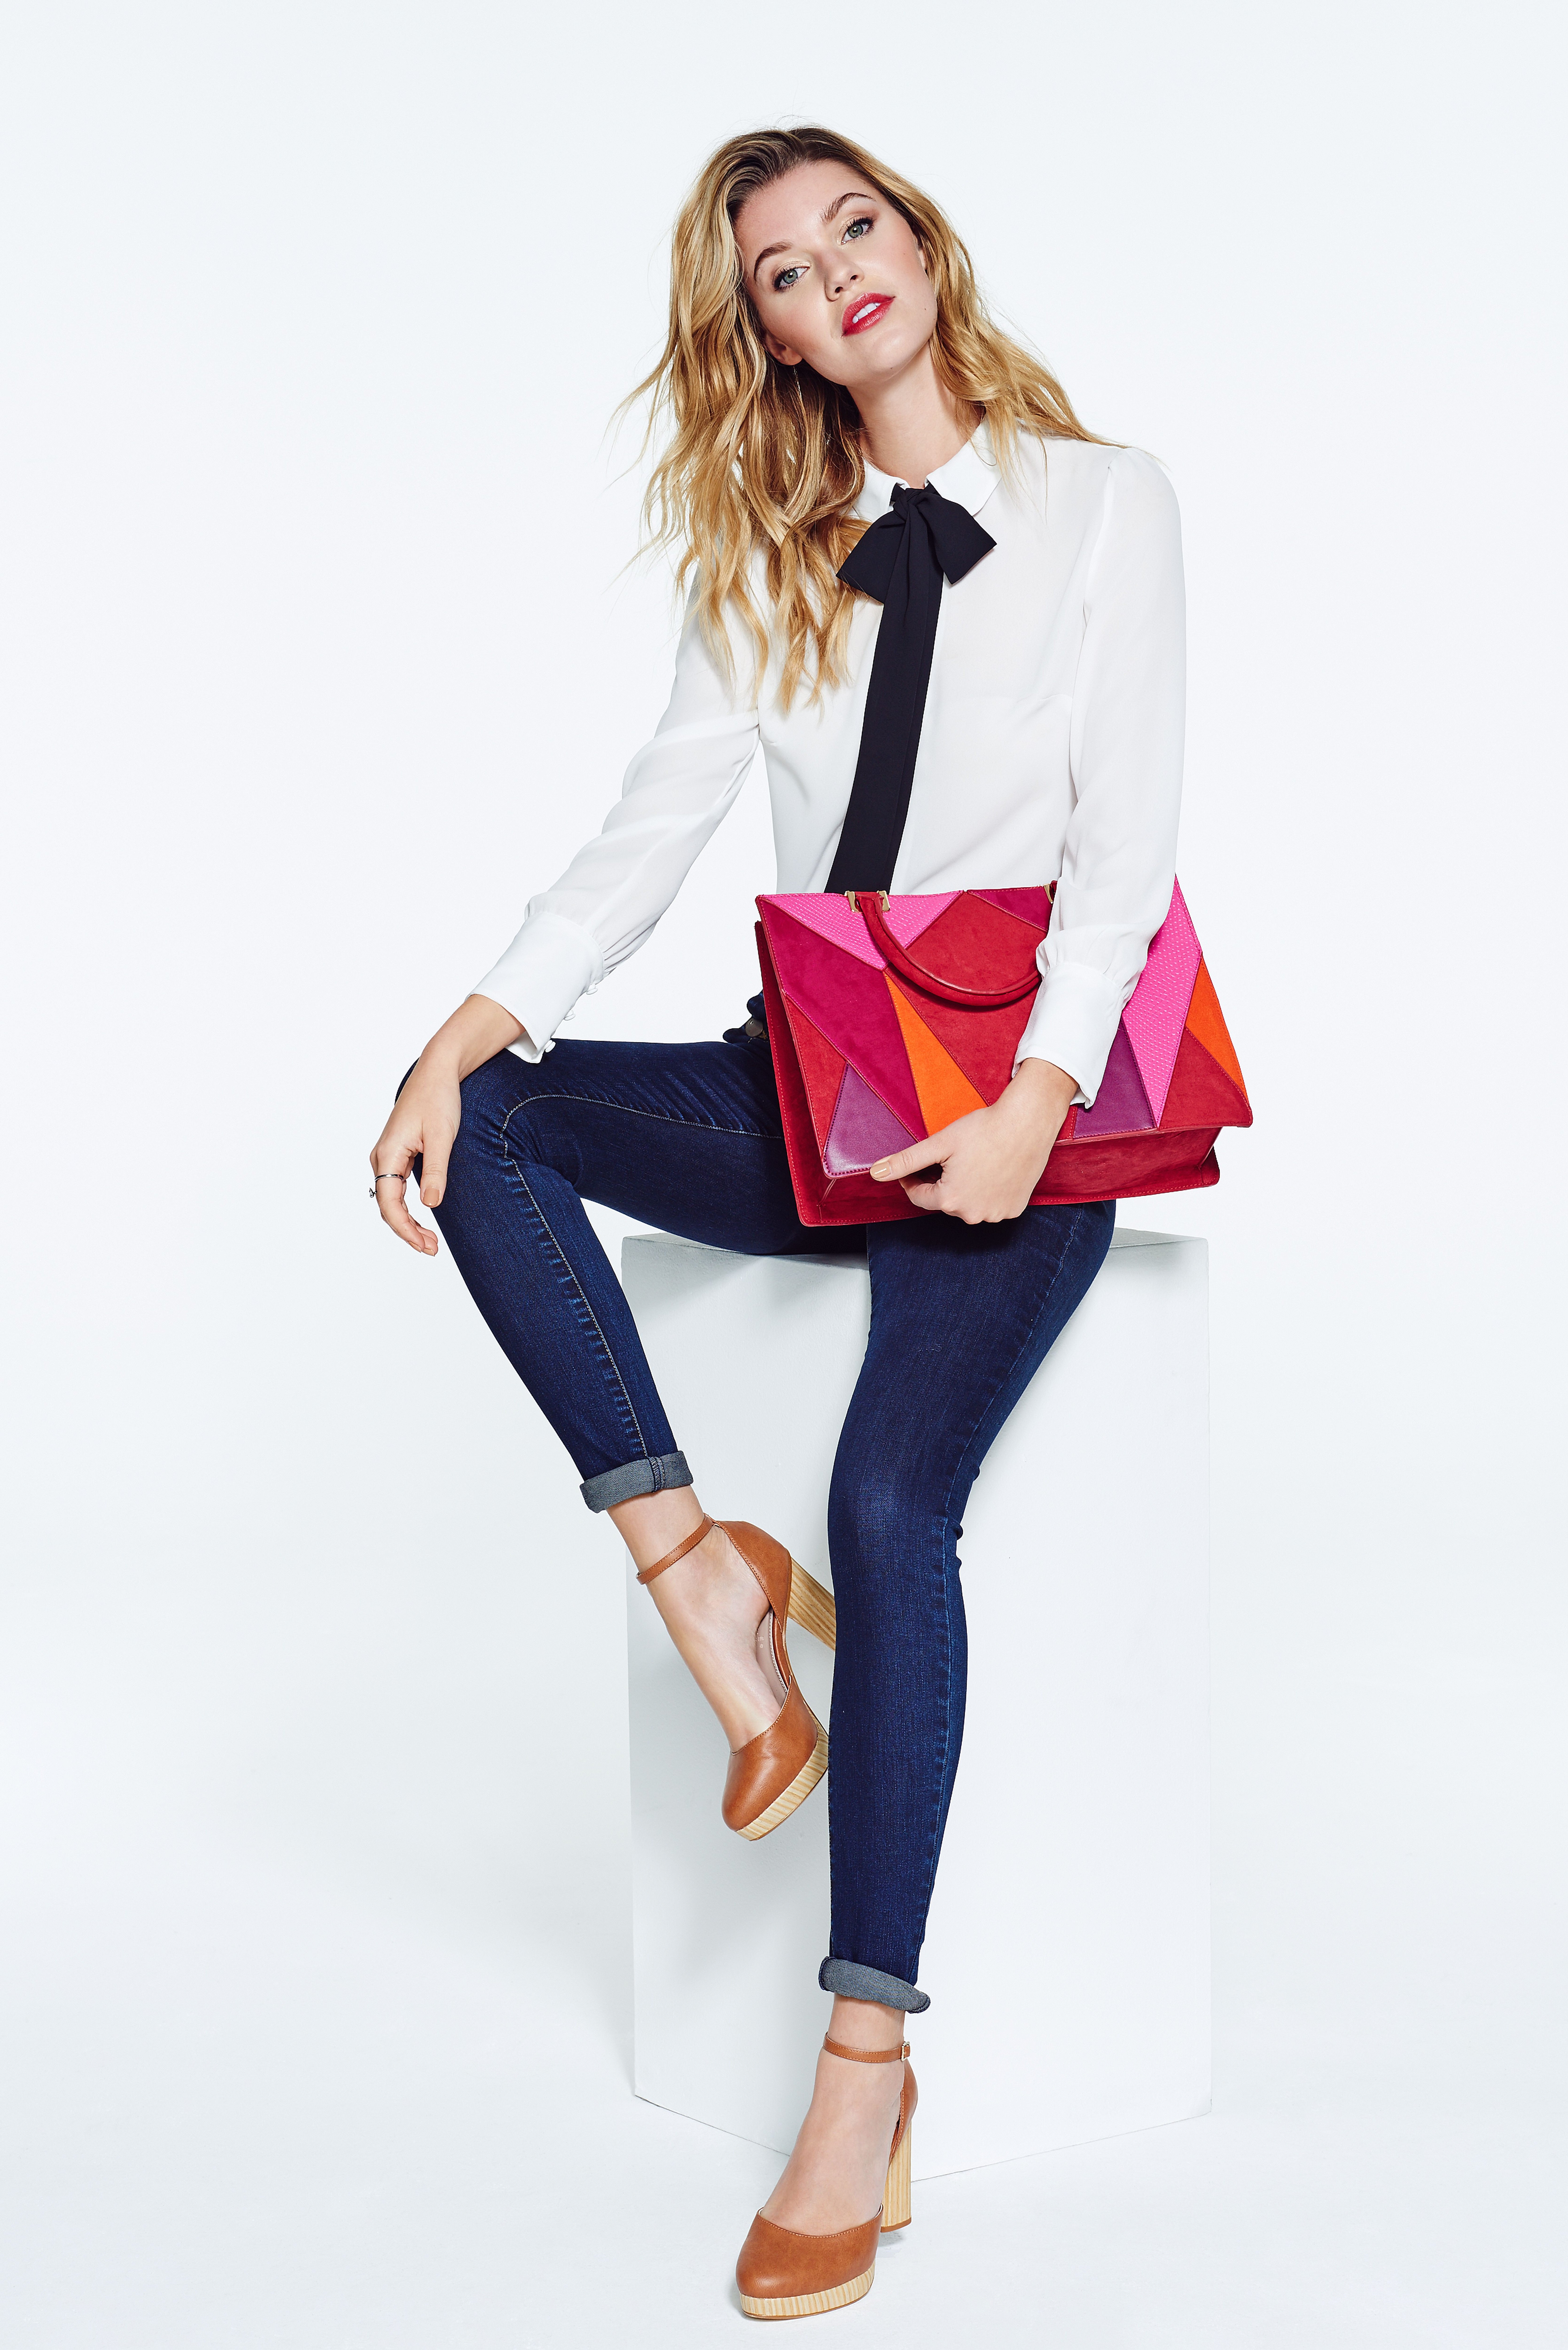 V by Very BUTTON THROUGH TIE NECK BLOUSEe39, jeans e50, Shoebox wedge sandal e38, large patchwork tote e48